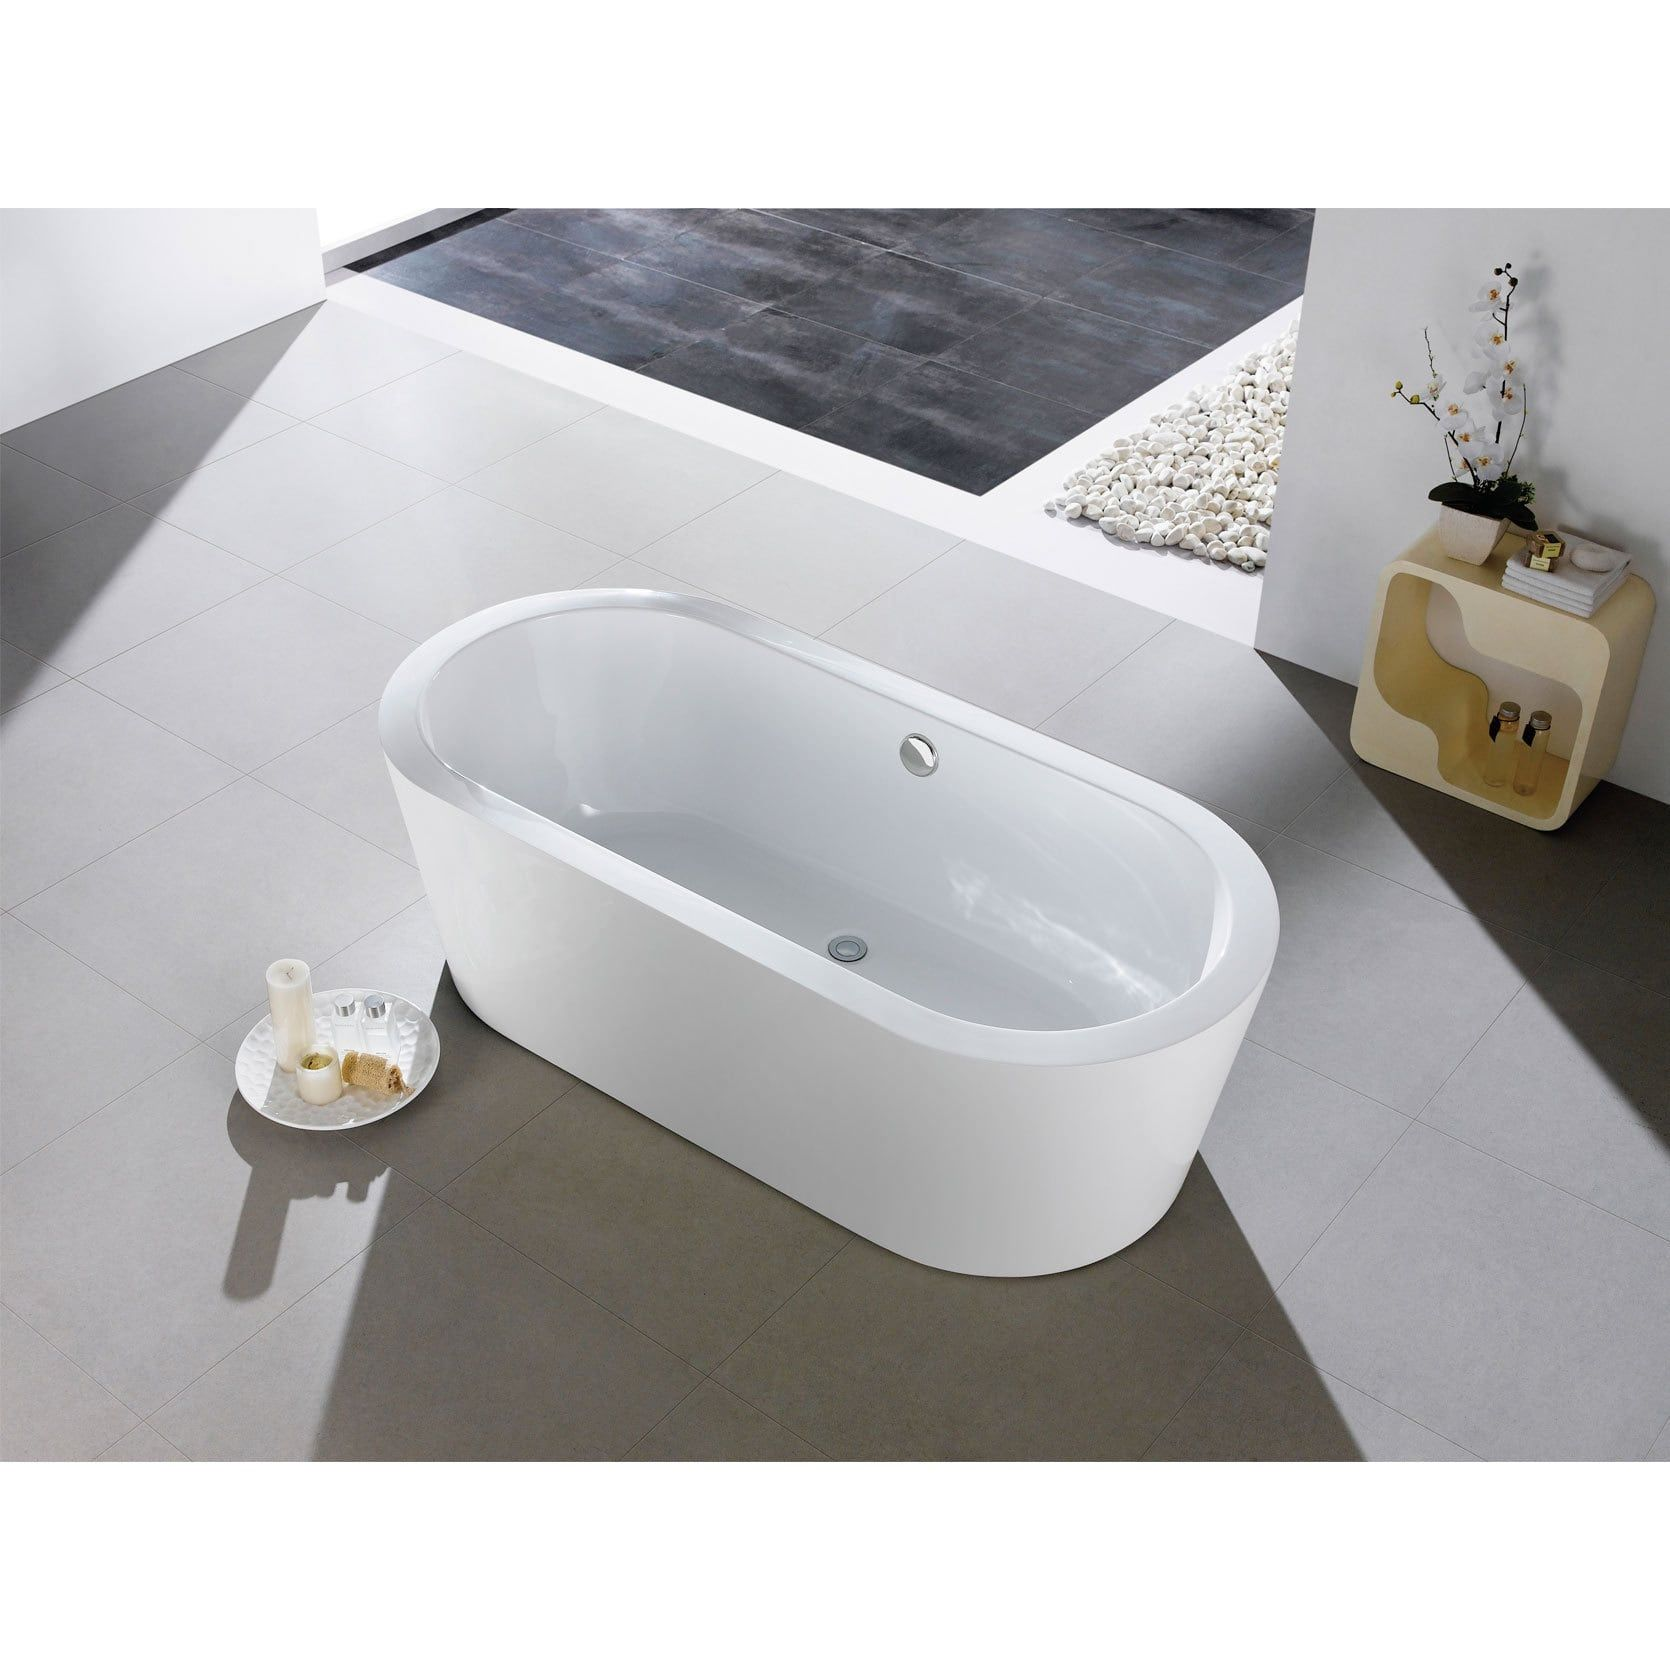 Mandalay 58-inch x 29-inch White Oval Soaking Bathtub | Overstock ...